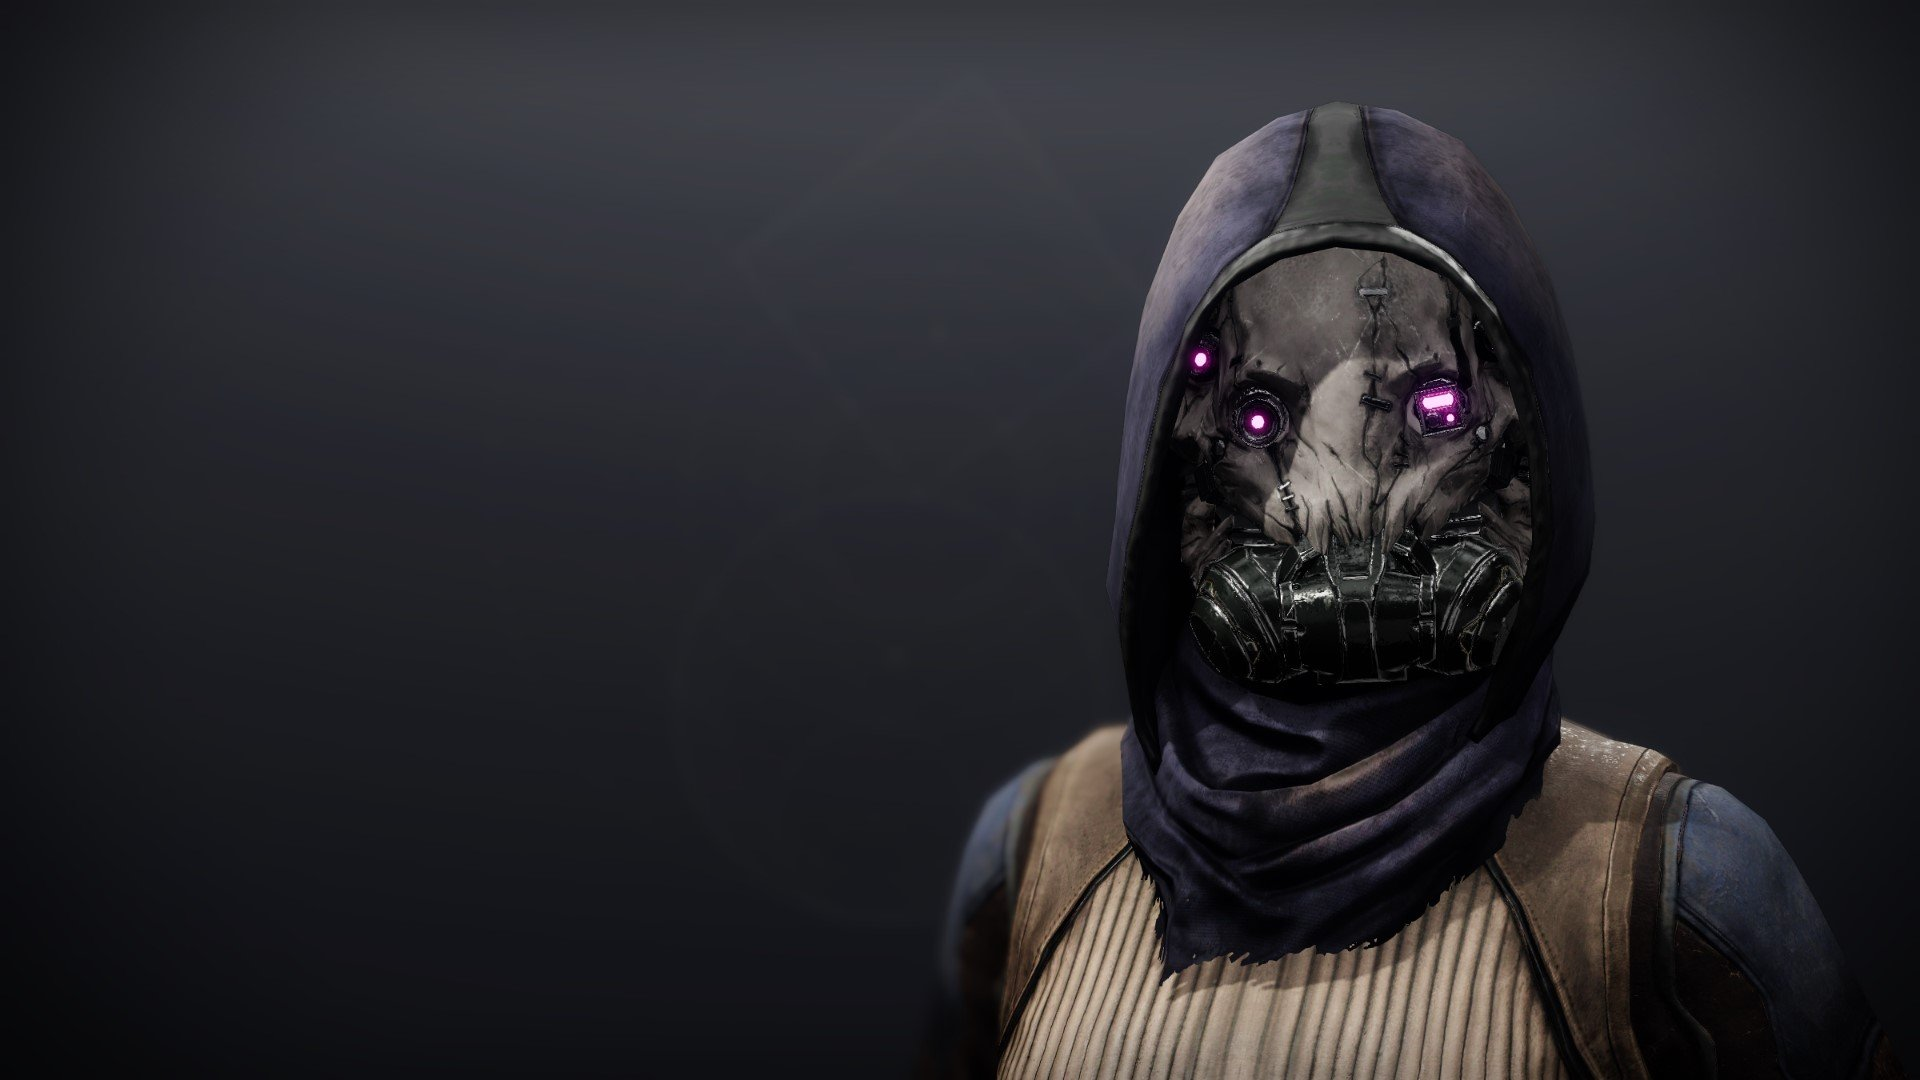 An in-game render of the Mask of Bakris.